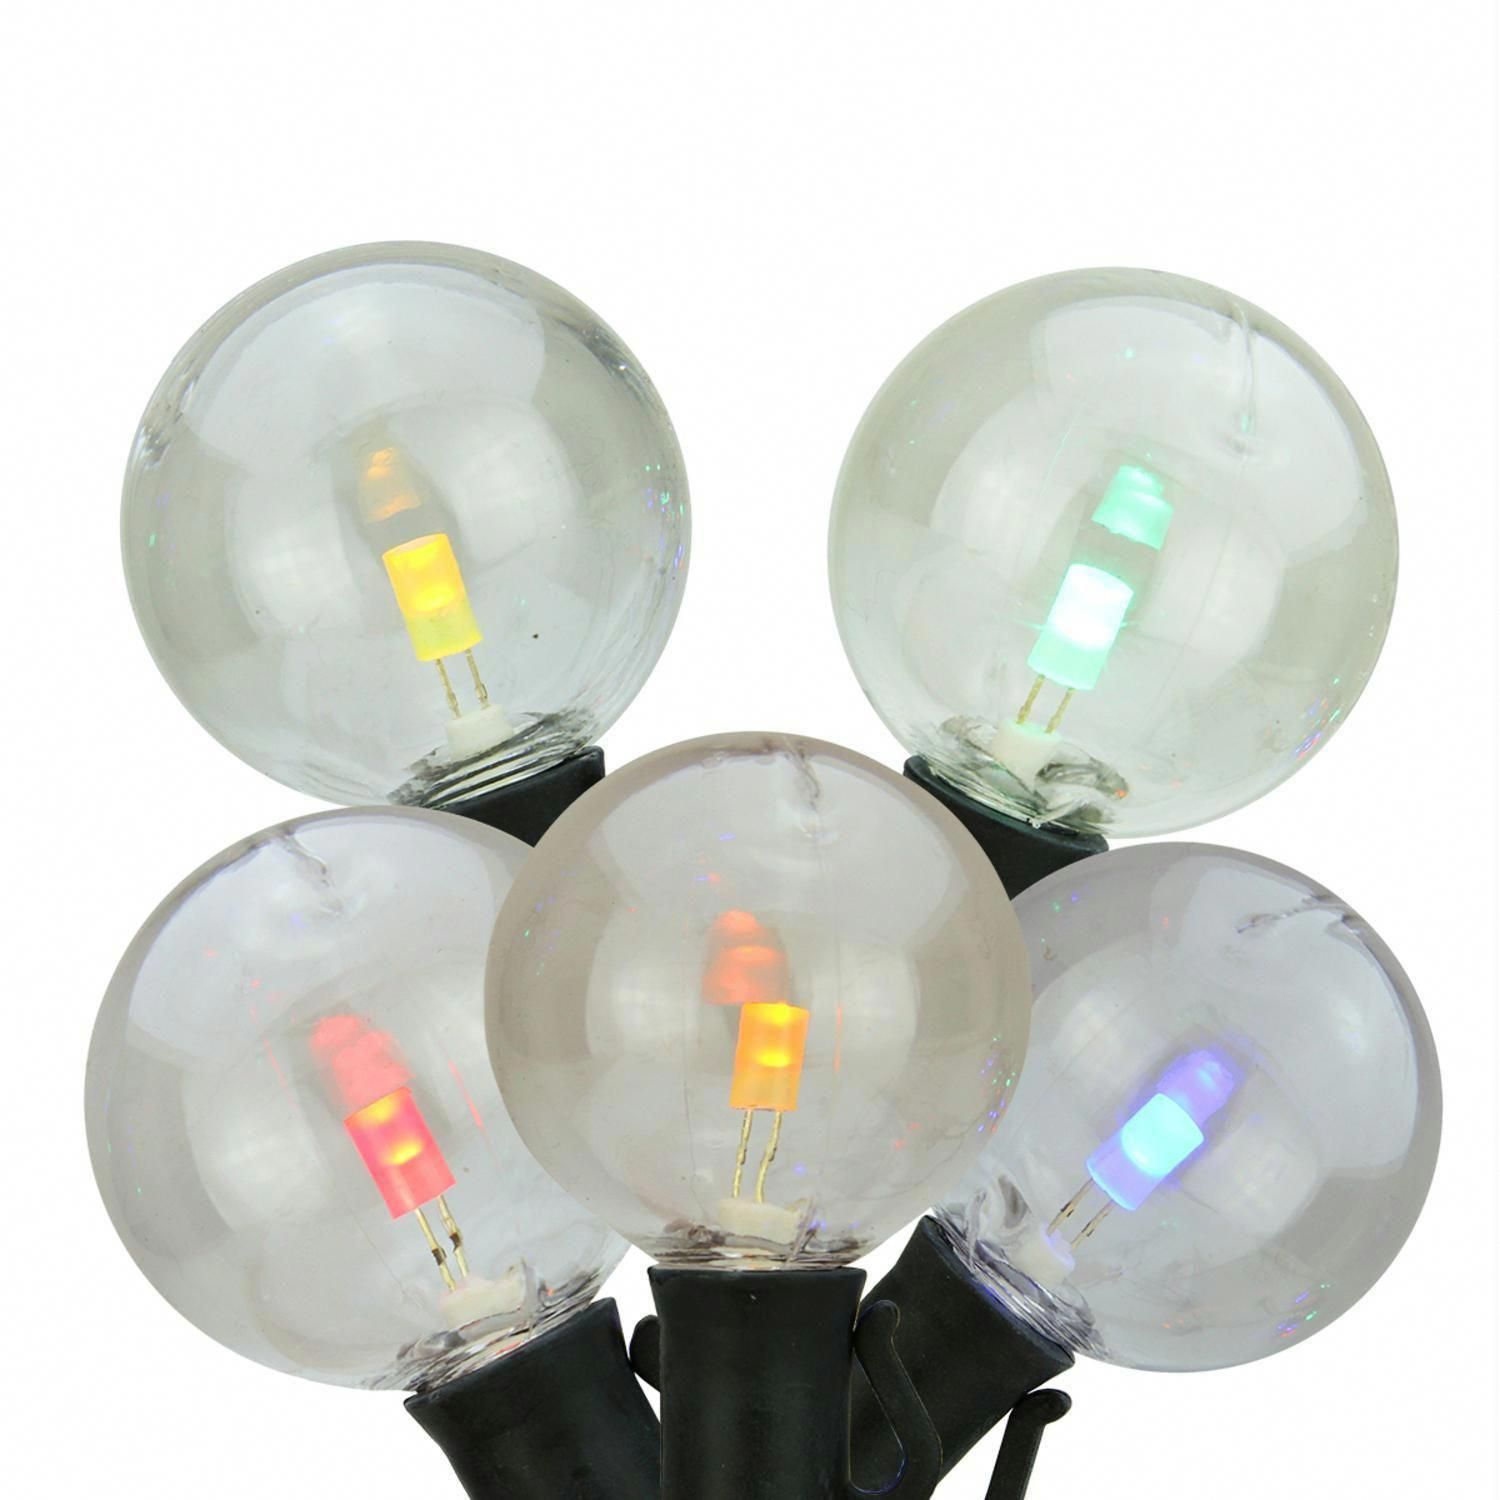 Set of 25 Multi Color LED G40 mercial Grade Patio or Christmas